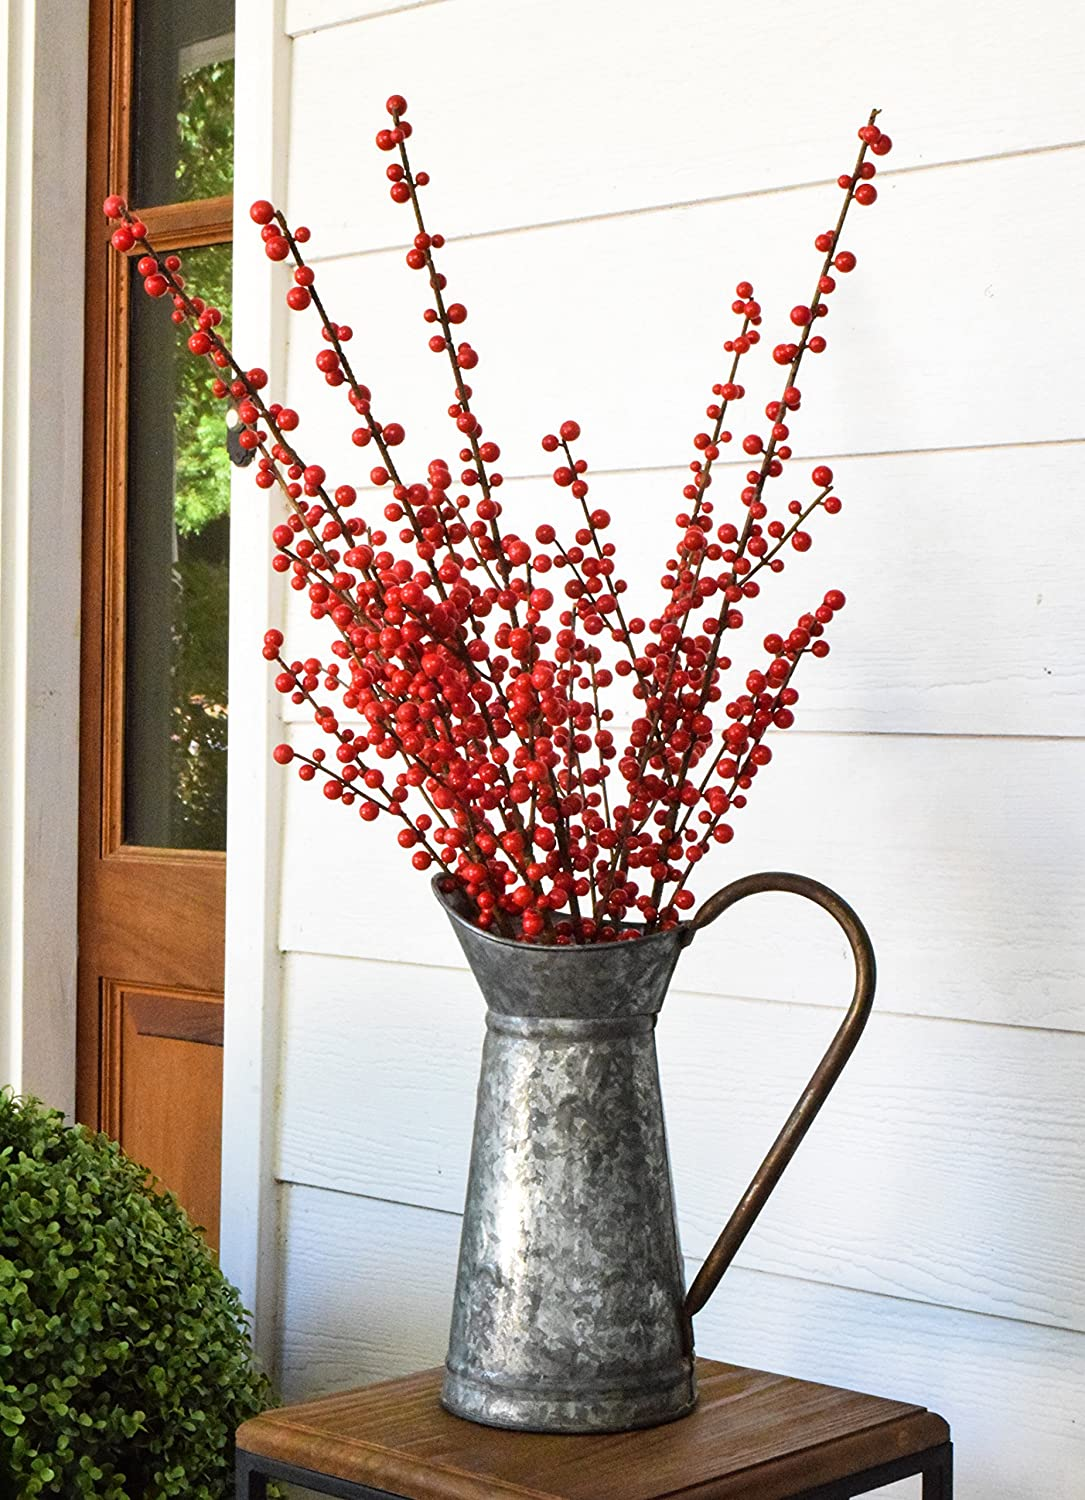 28 Red Indoor/outdoor Berry Sprays (6 Stems) Floral Picks Mills Floral 1132GI9616